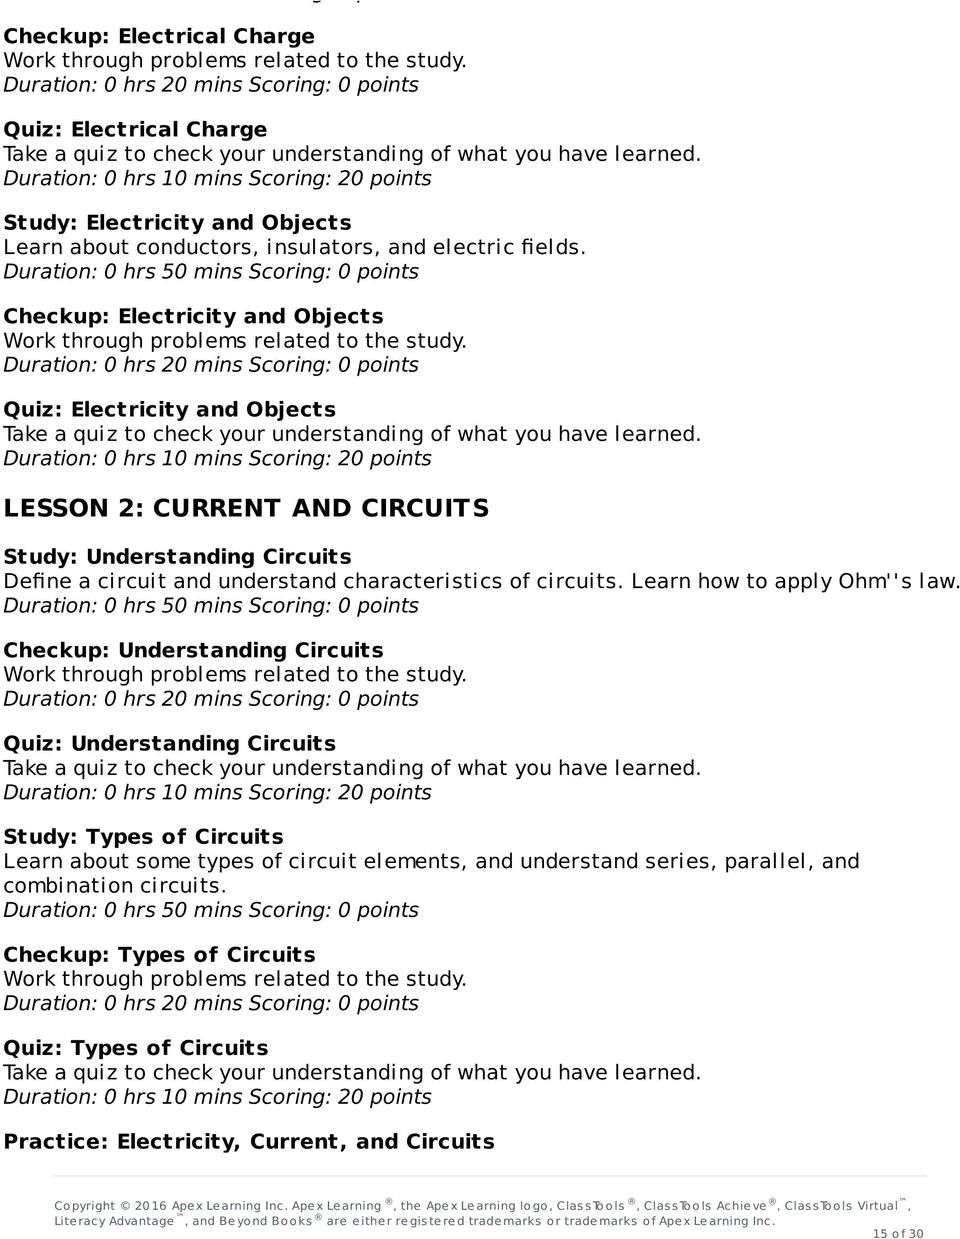 characteristics of circuits. Learn how to apply Ohm'' s law.